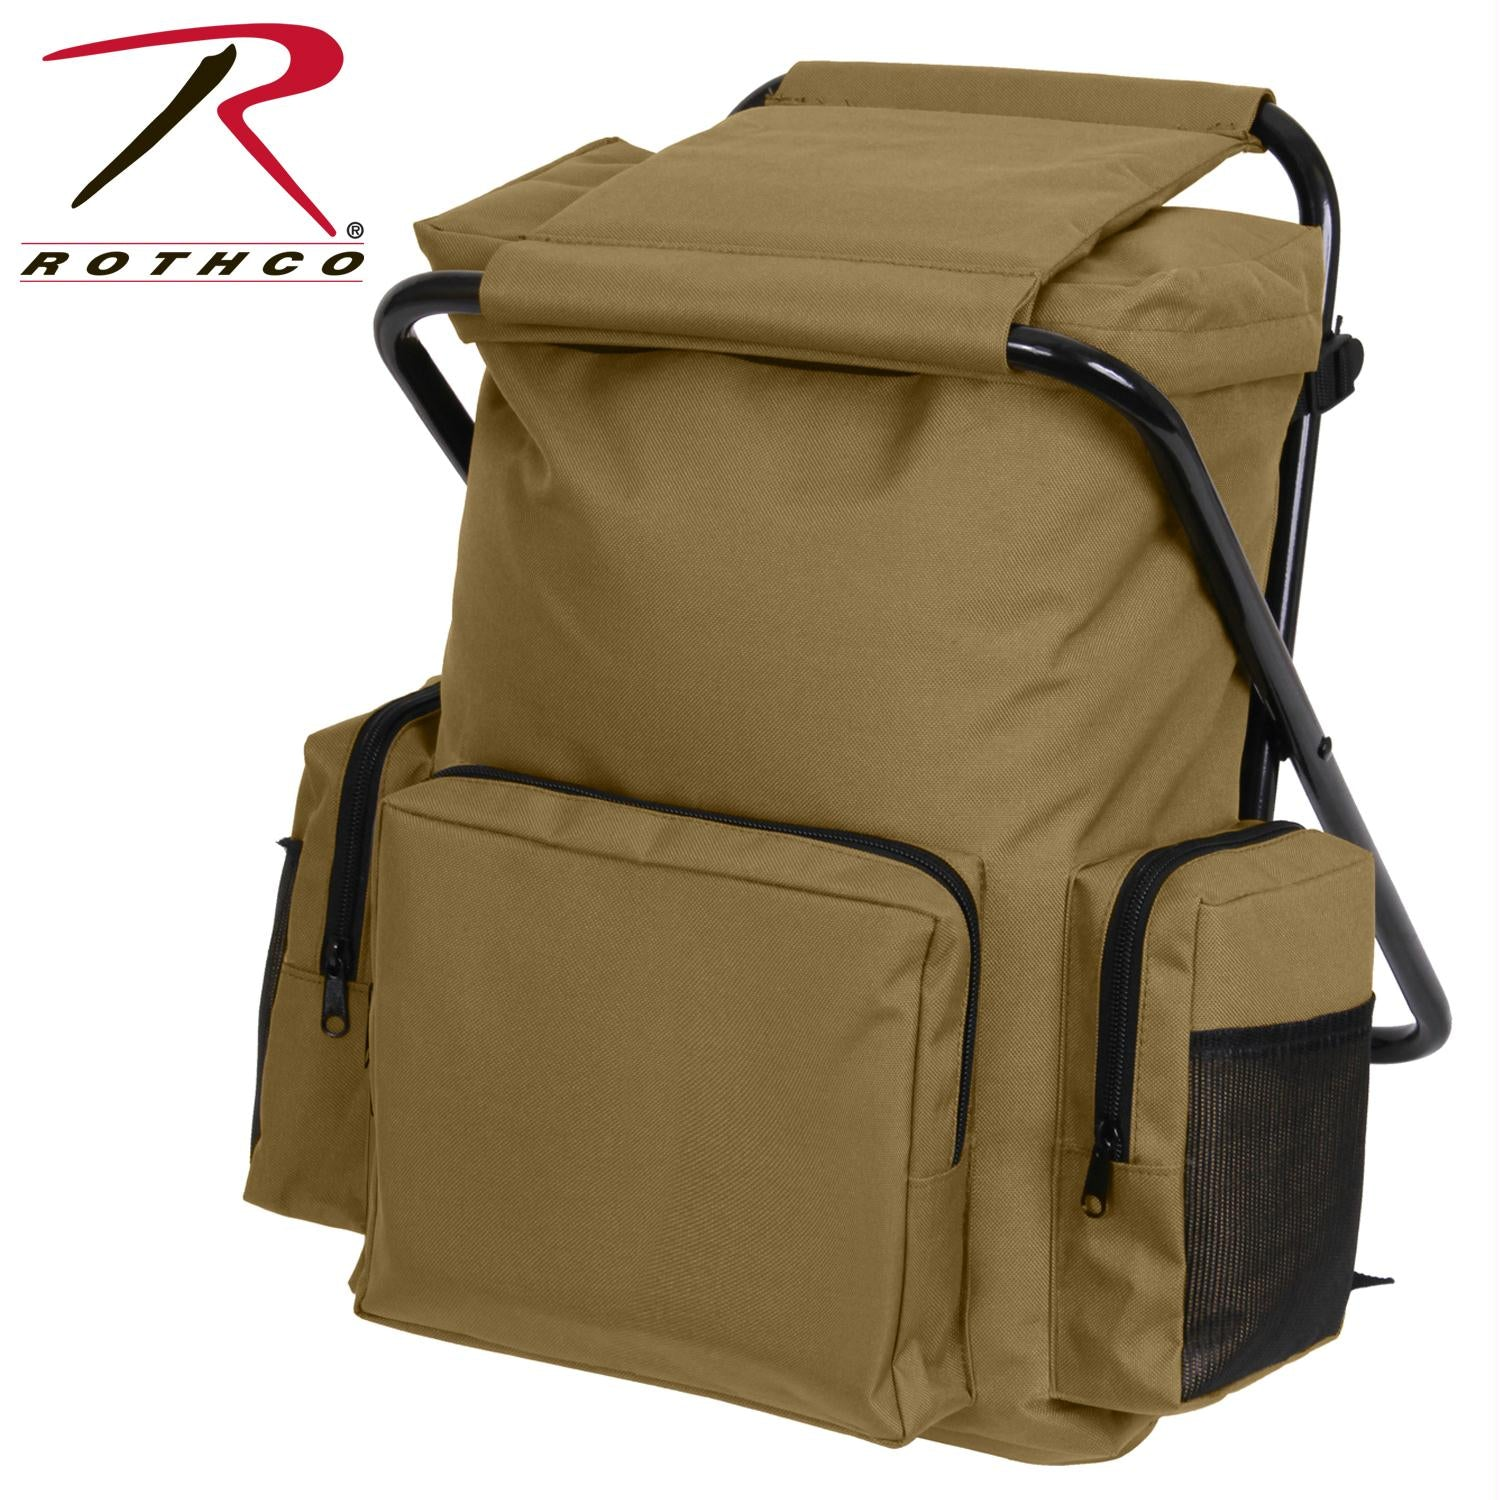 Rothco Backpack and Stool Combo Pack - Coyote Brown